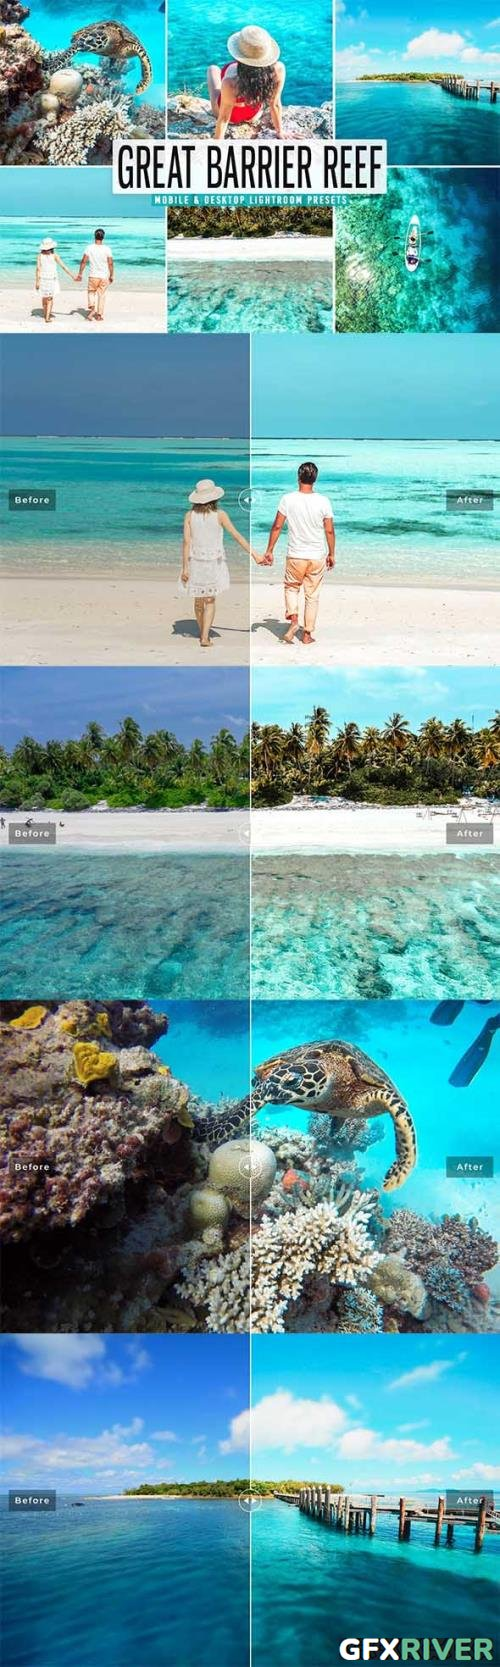 Great Barrier Reef Pro Lightroom Presets